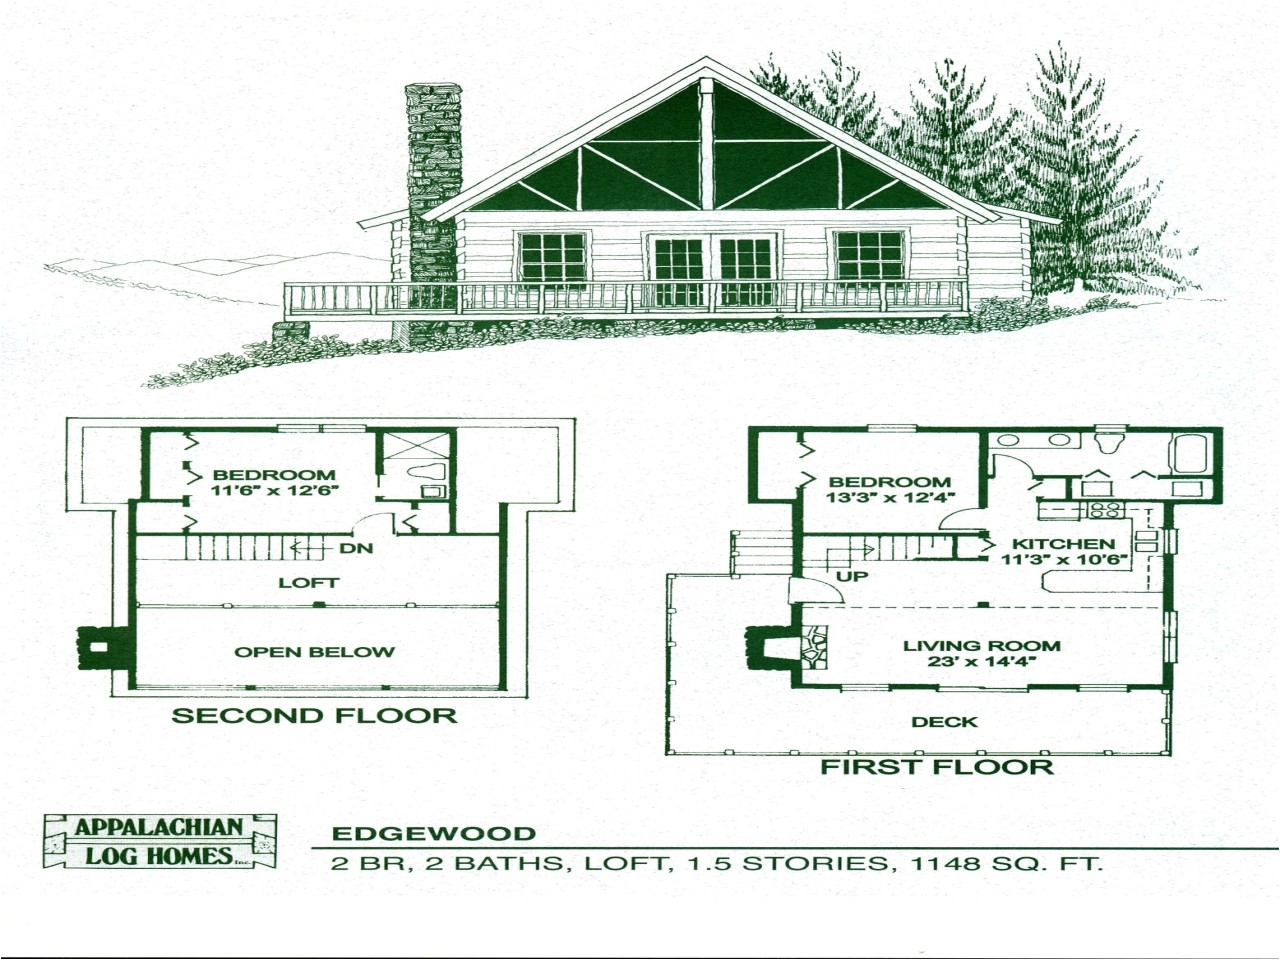 38d7a55a8cbe95c9 log cabin package prices log cabin kits floor plans